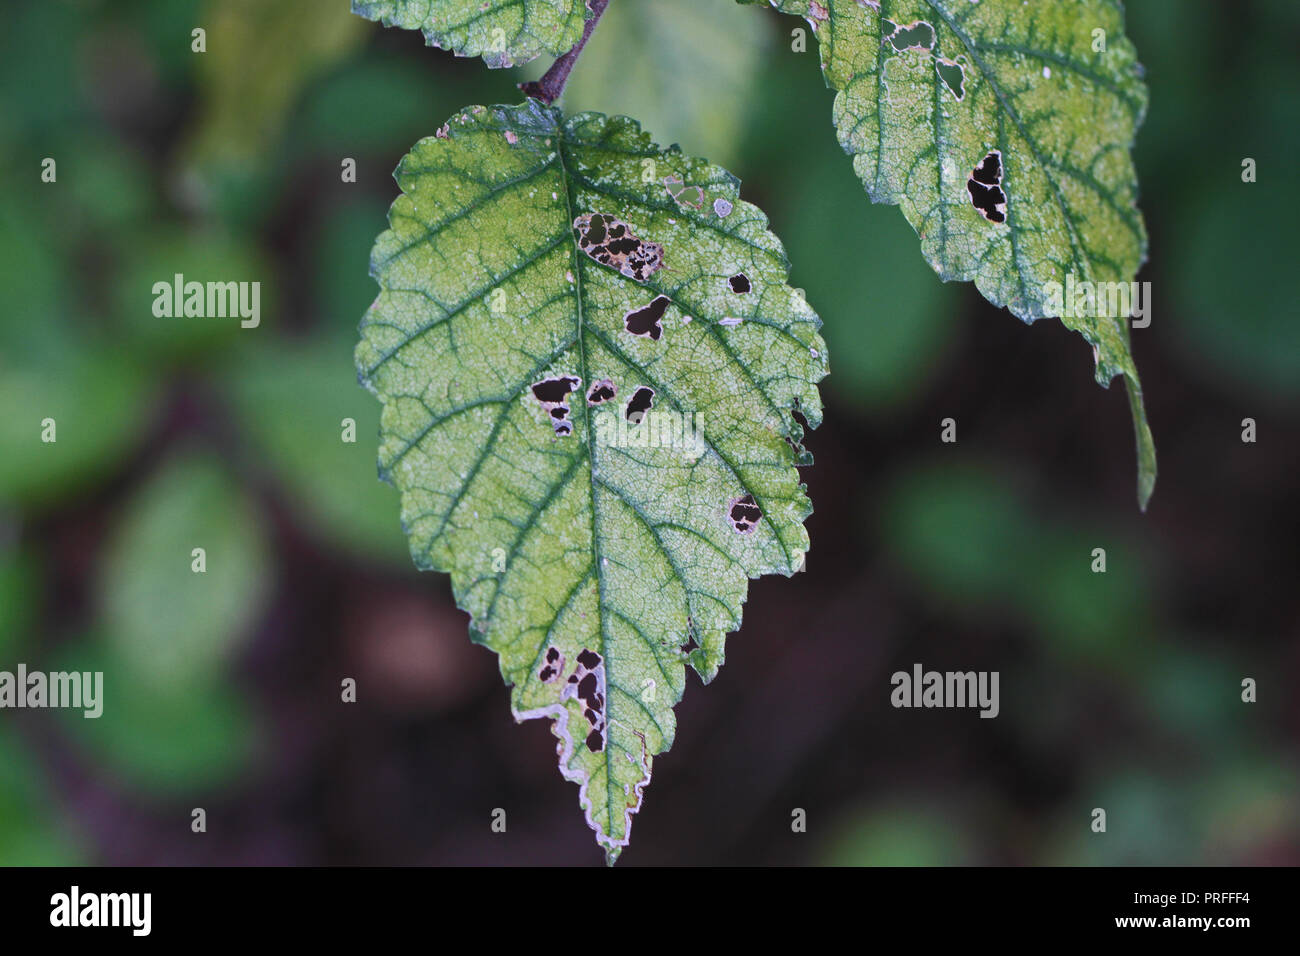 dying and diseased chloritic leaves on a dying elm tree Latin ulmus or frondibus ulmi with Dutch elm disease also called grafiosi del olmo in Italy - Stock Image